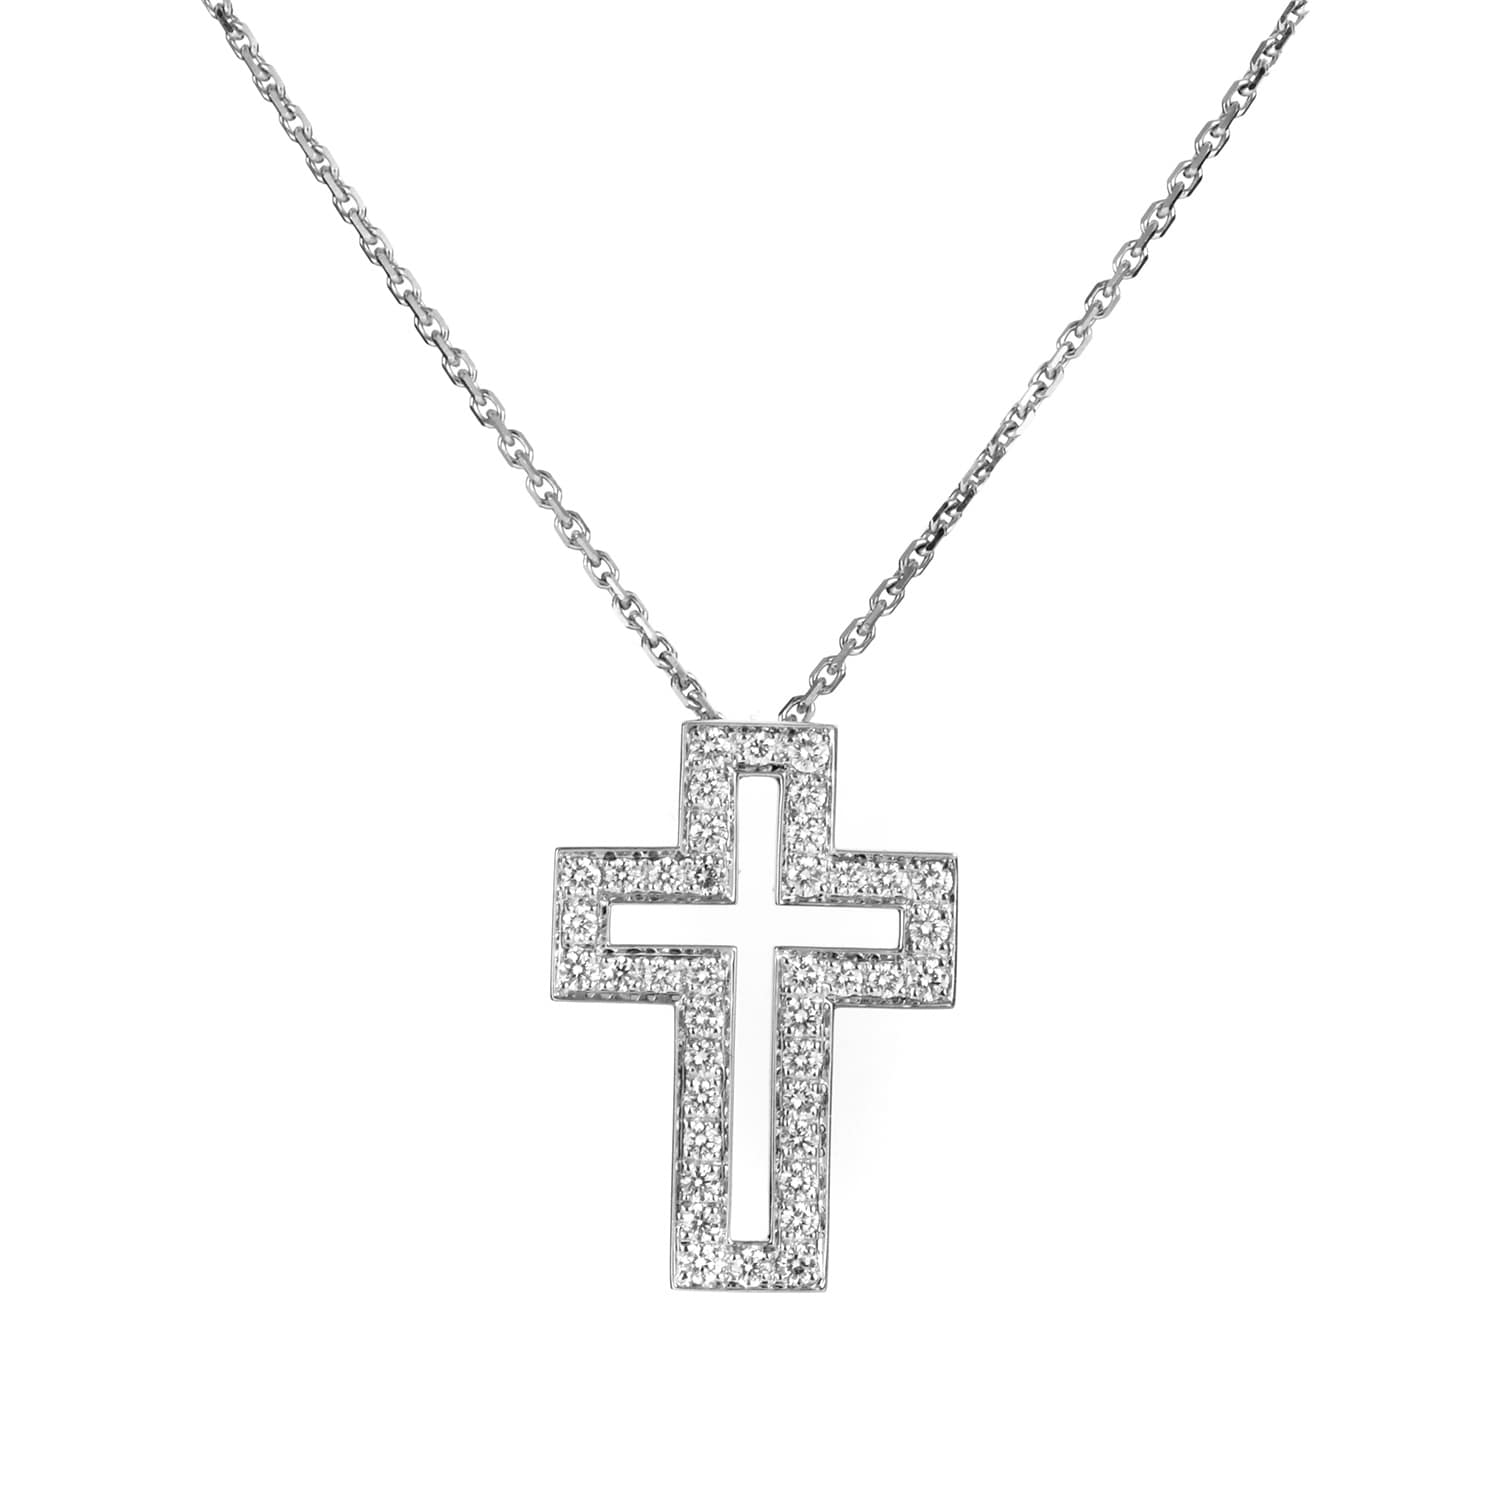 Shop Boucheron White Gold Diamond Cross Pendant Necklace - On Sale ... 71067d69f3a0